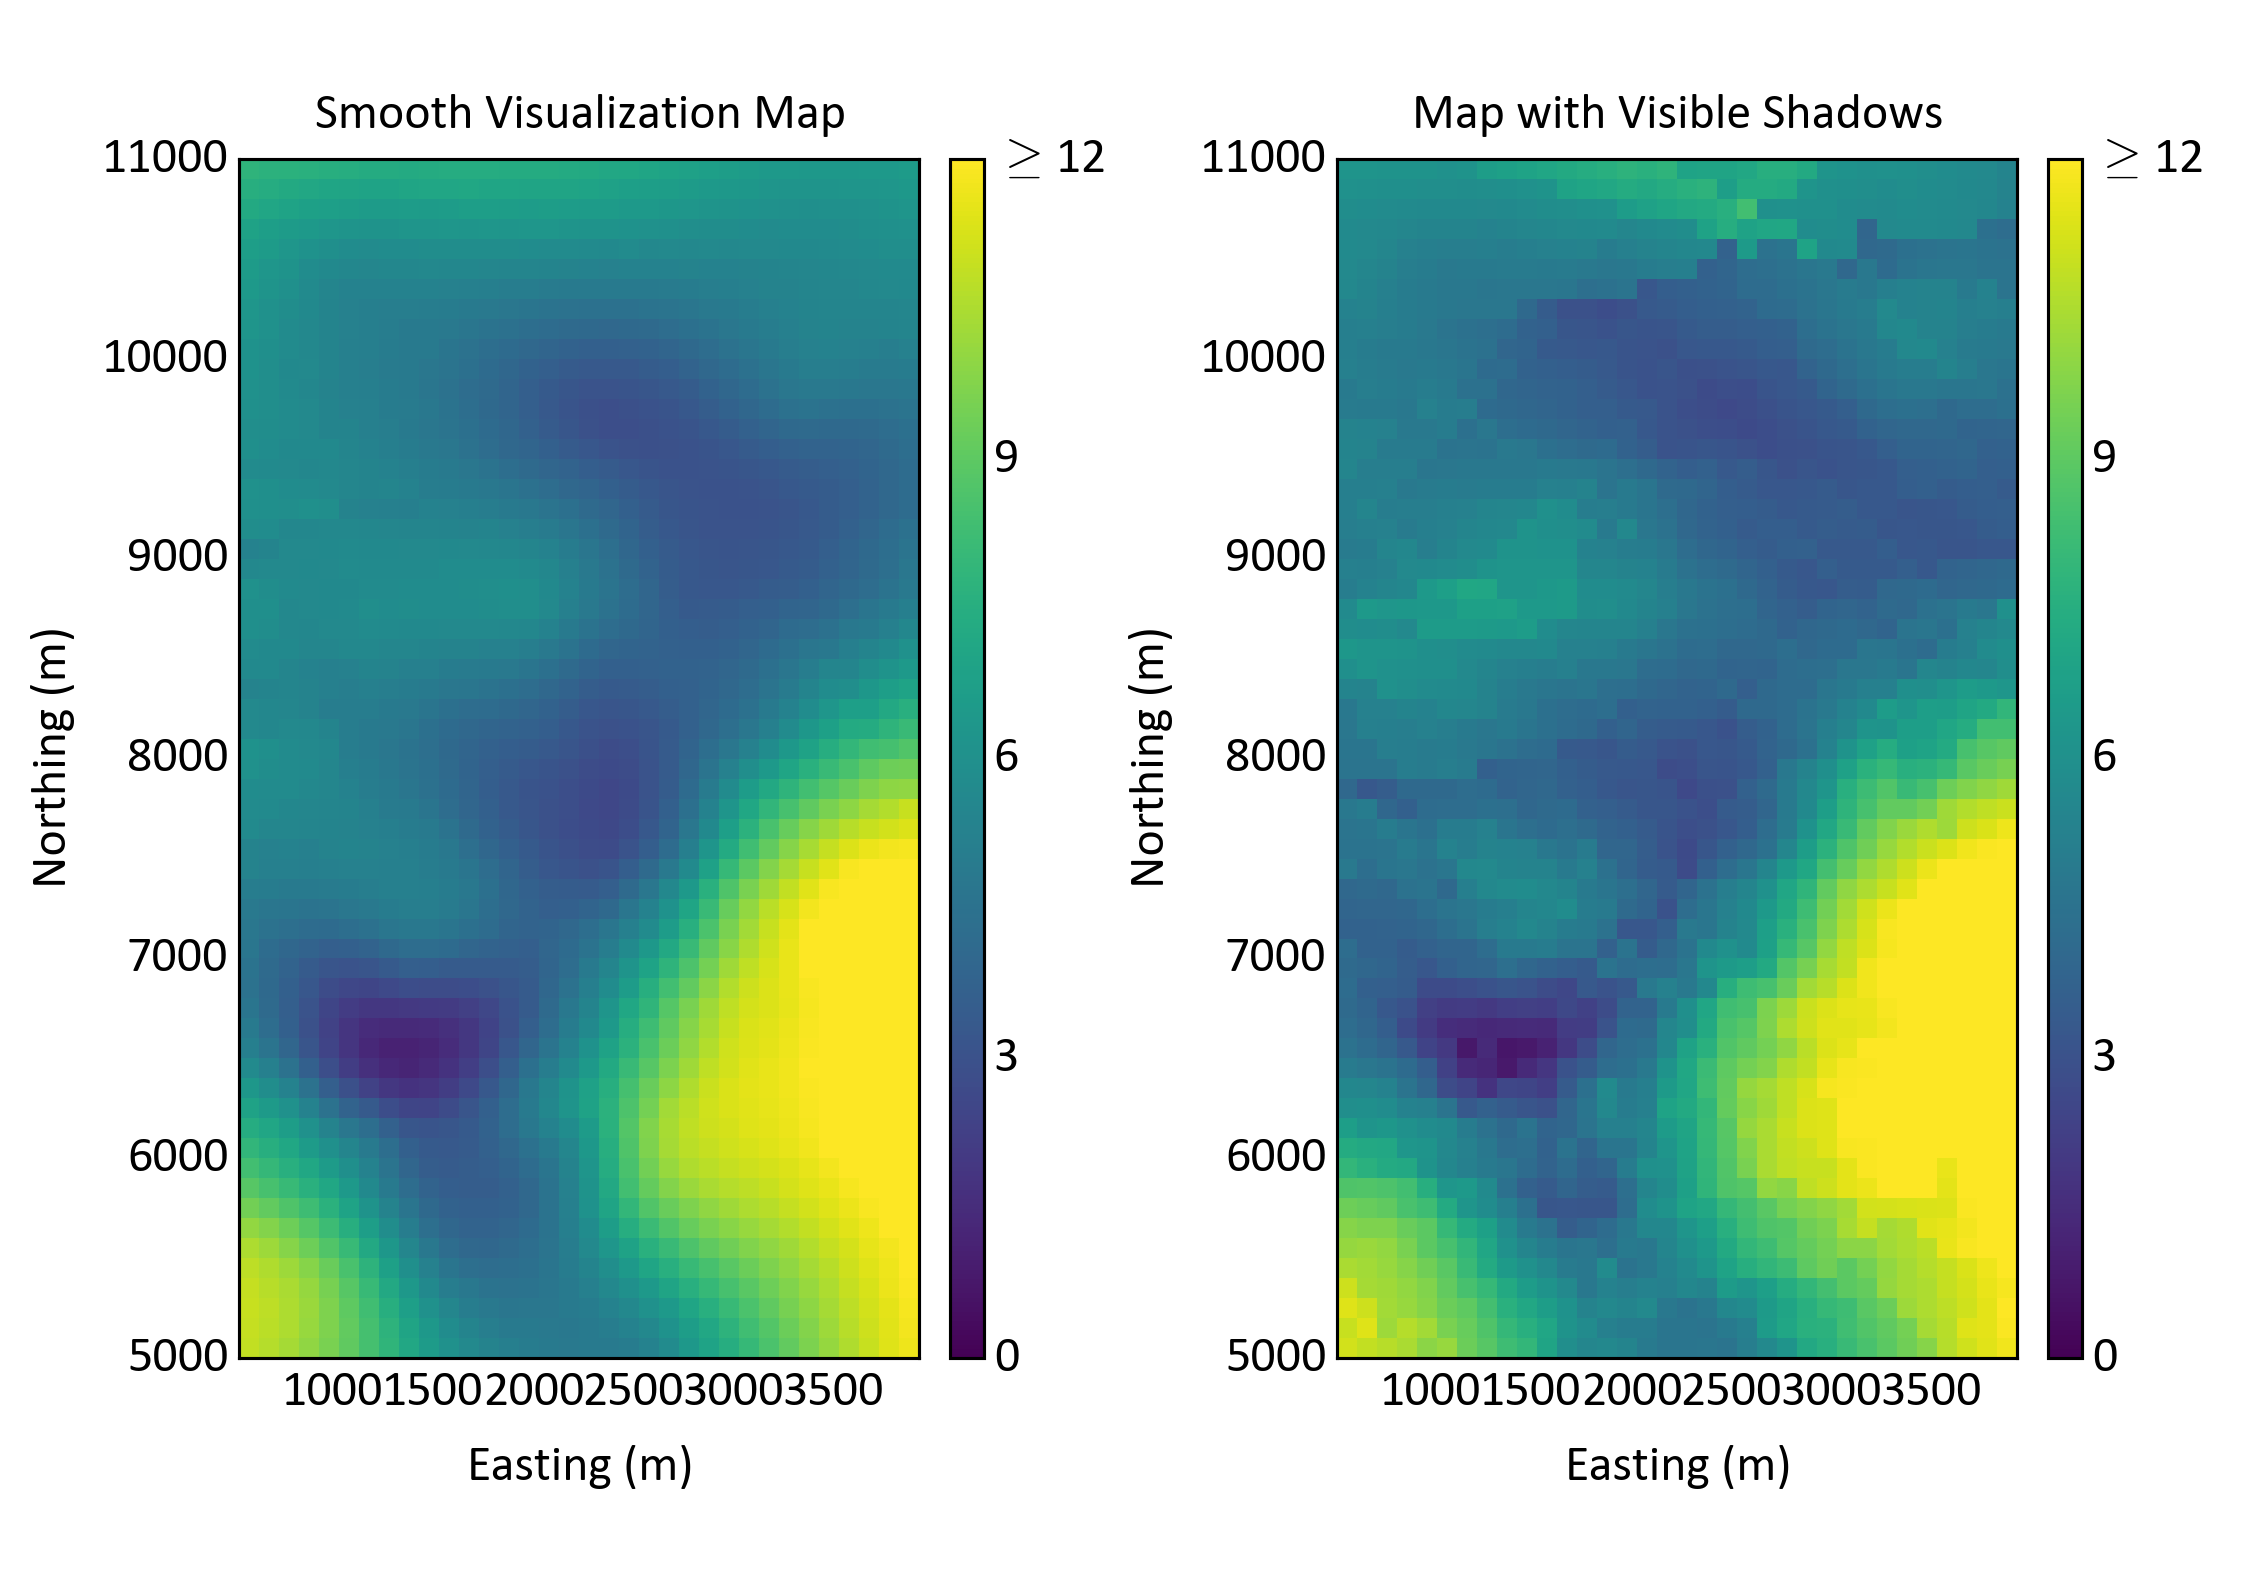 Smoothly varying visualization map (left) and a restricted search map (right) with visible shadows and artifacts.